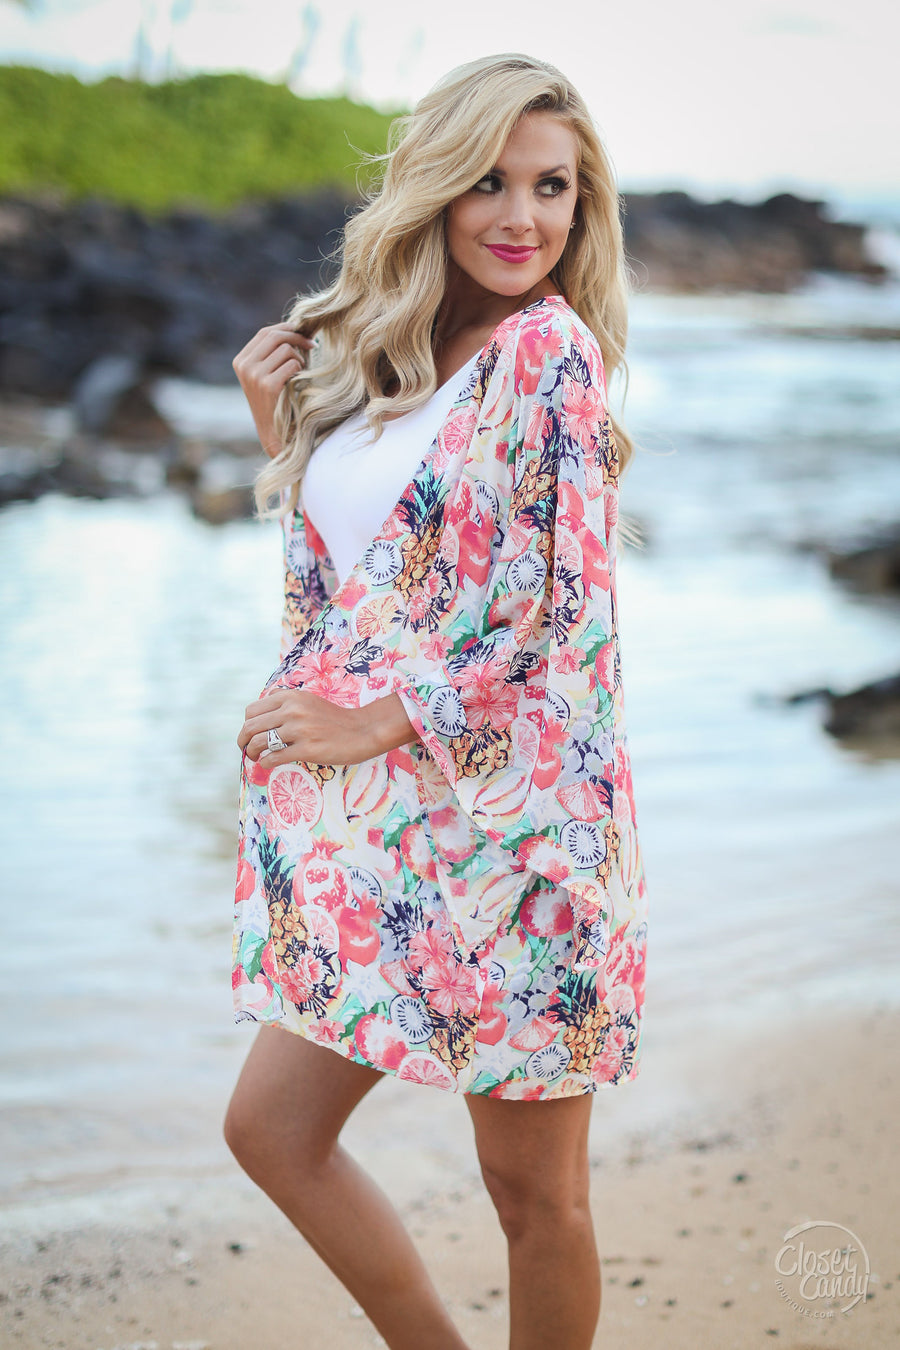 Closet Candy Boutique - Tropic Like It's Hot Kimono, cute tropical print vacation wear